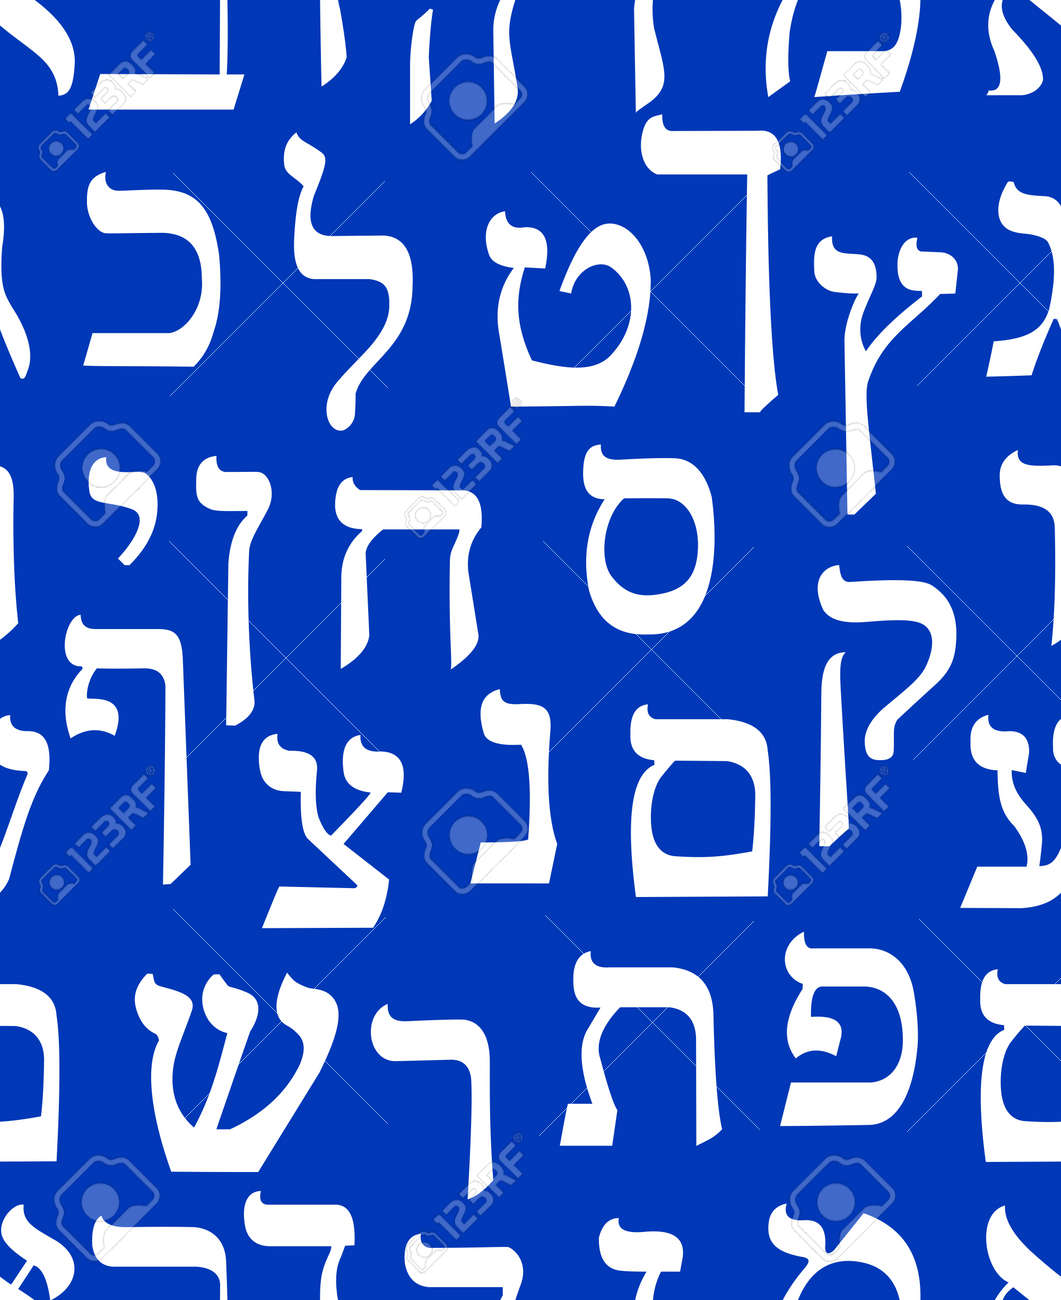 Hebrew alphabet seamless background with hebrew letters, white characters on blue background, Israel national colors - 144916391